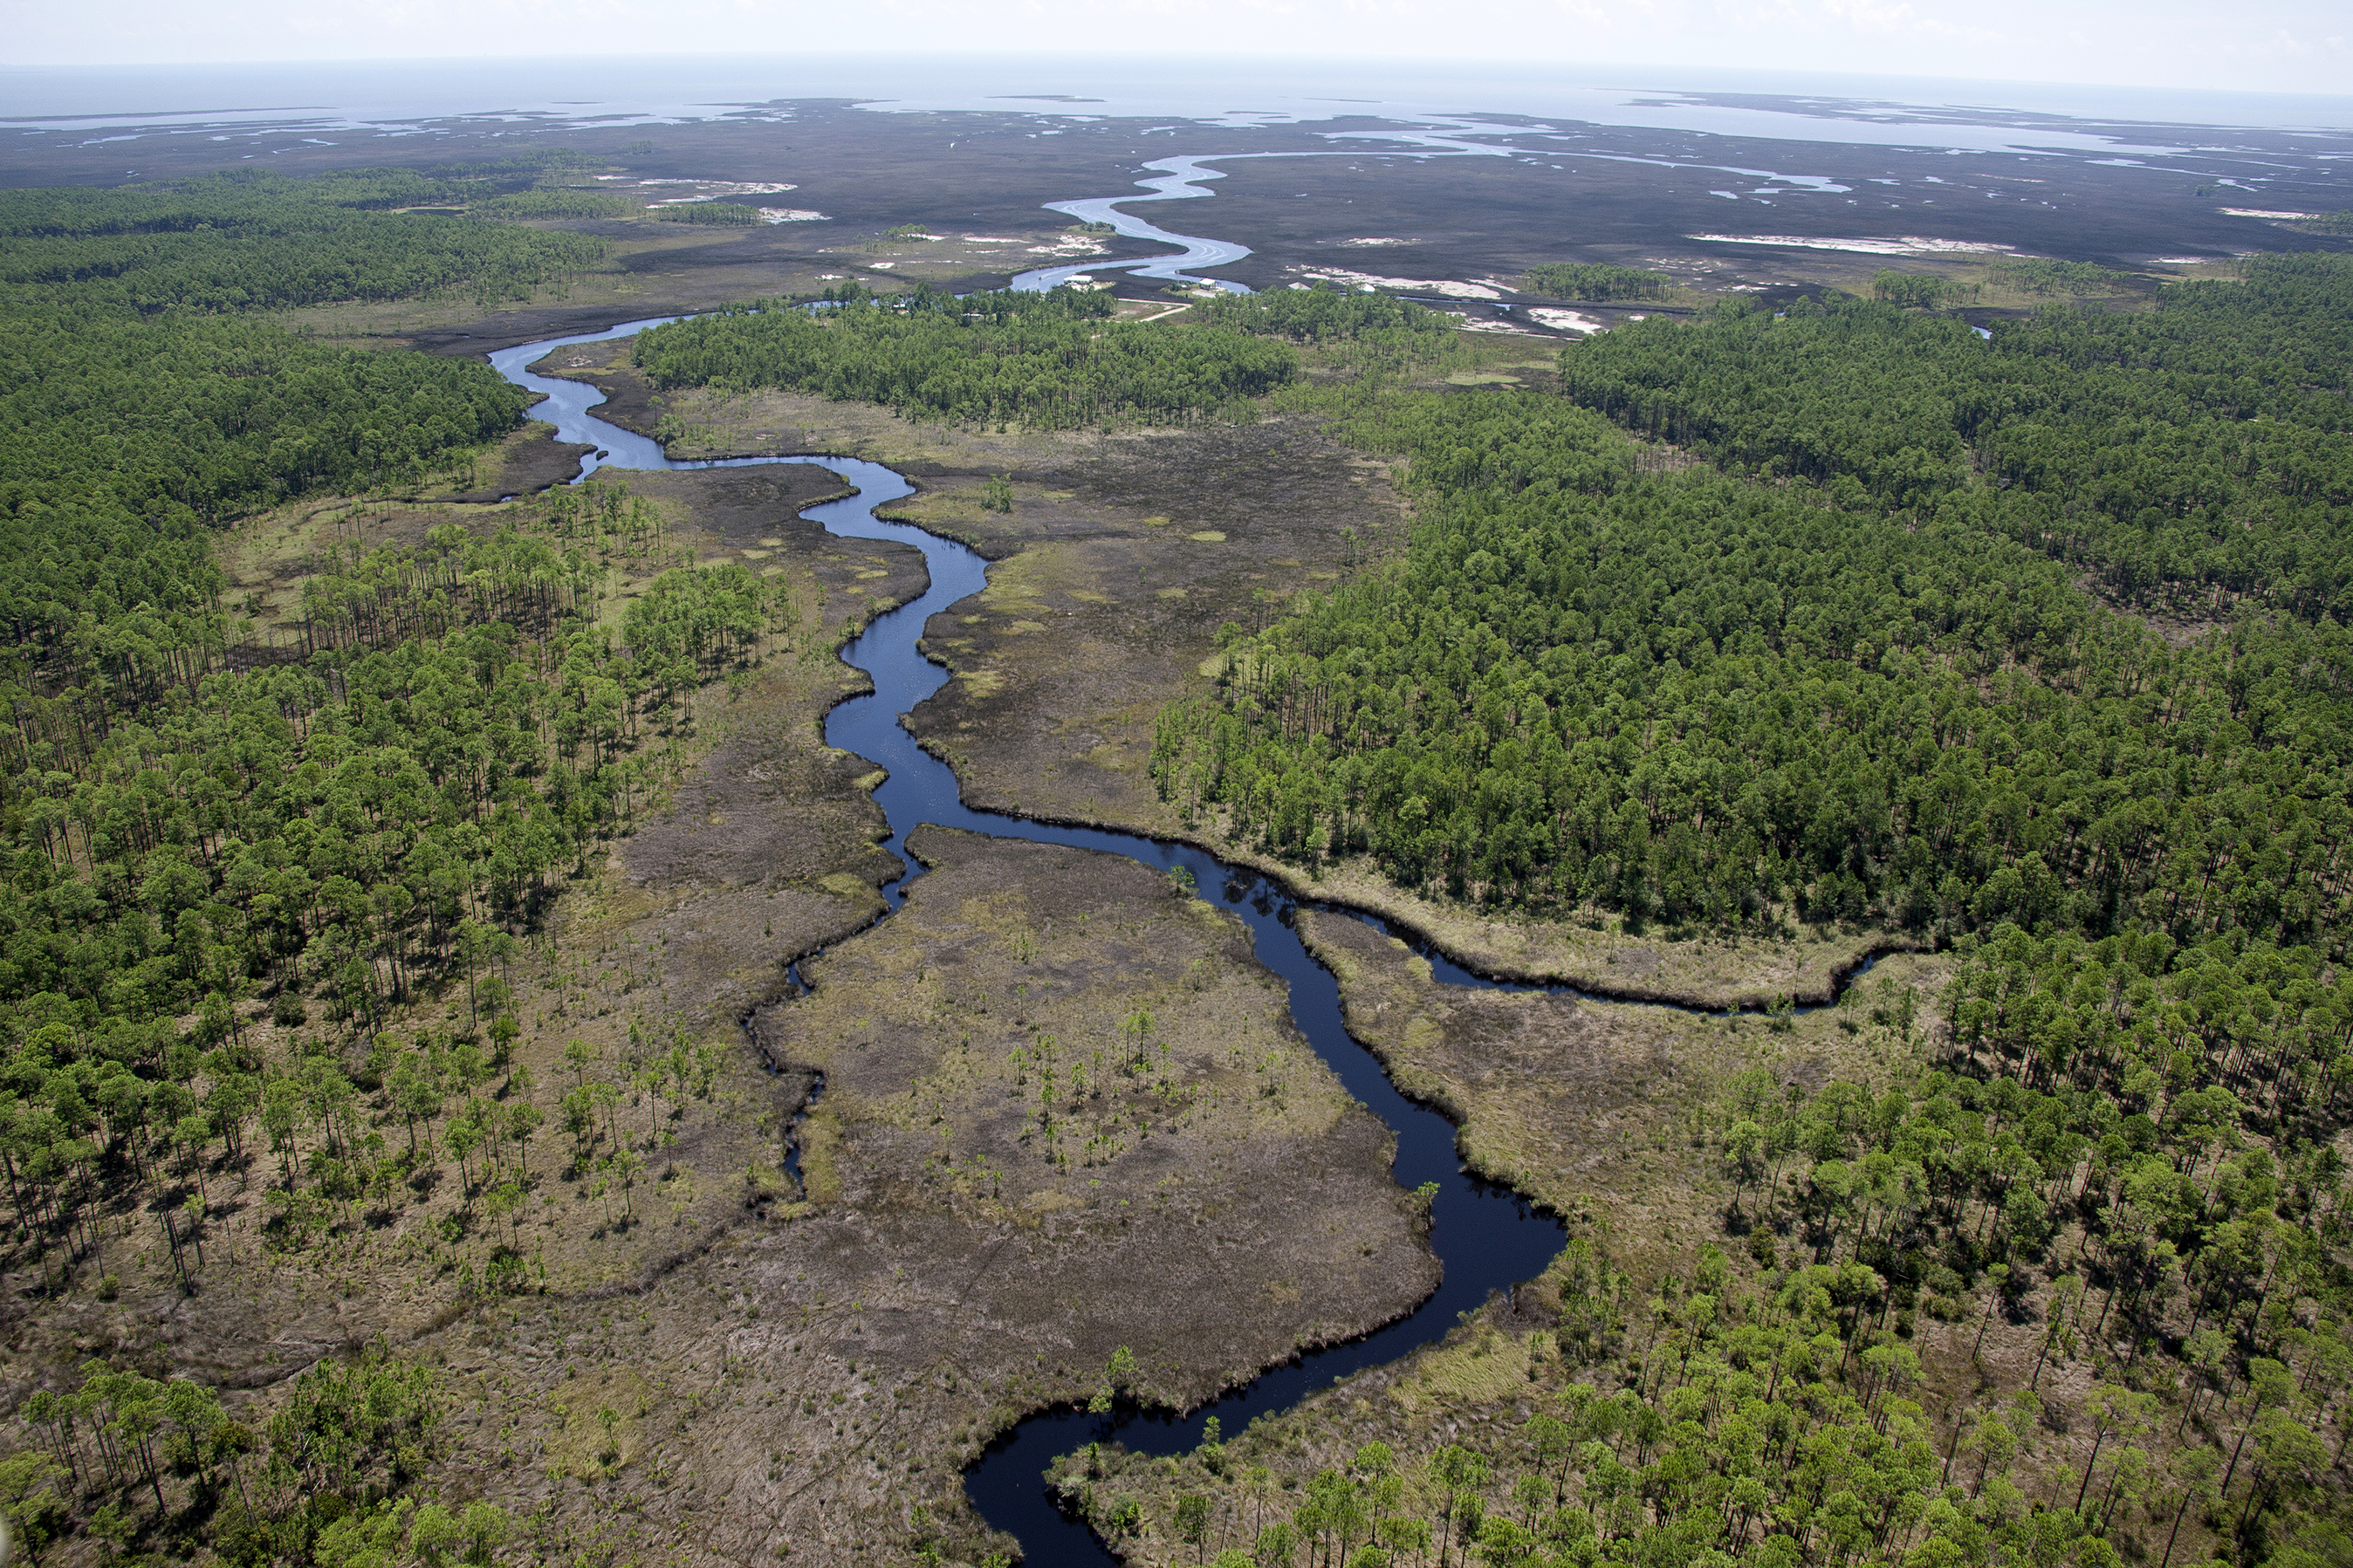 Aerial view of a river meandering into an estuary and bay in Mississippi. Credit: USFWS